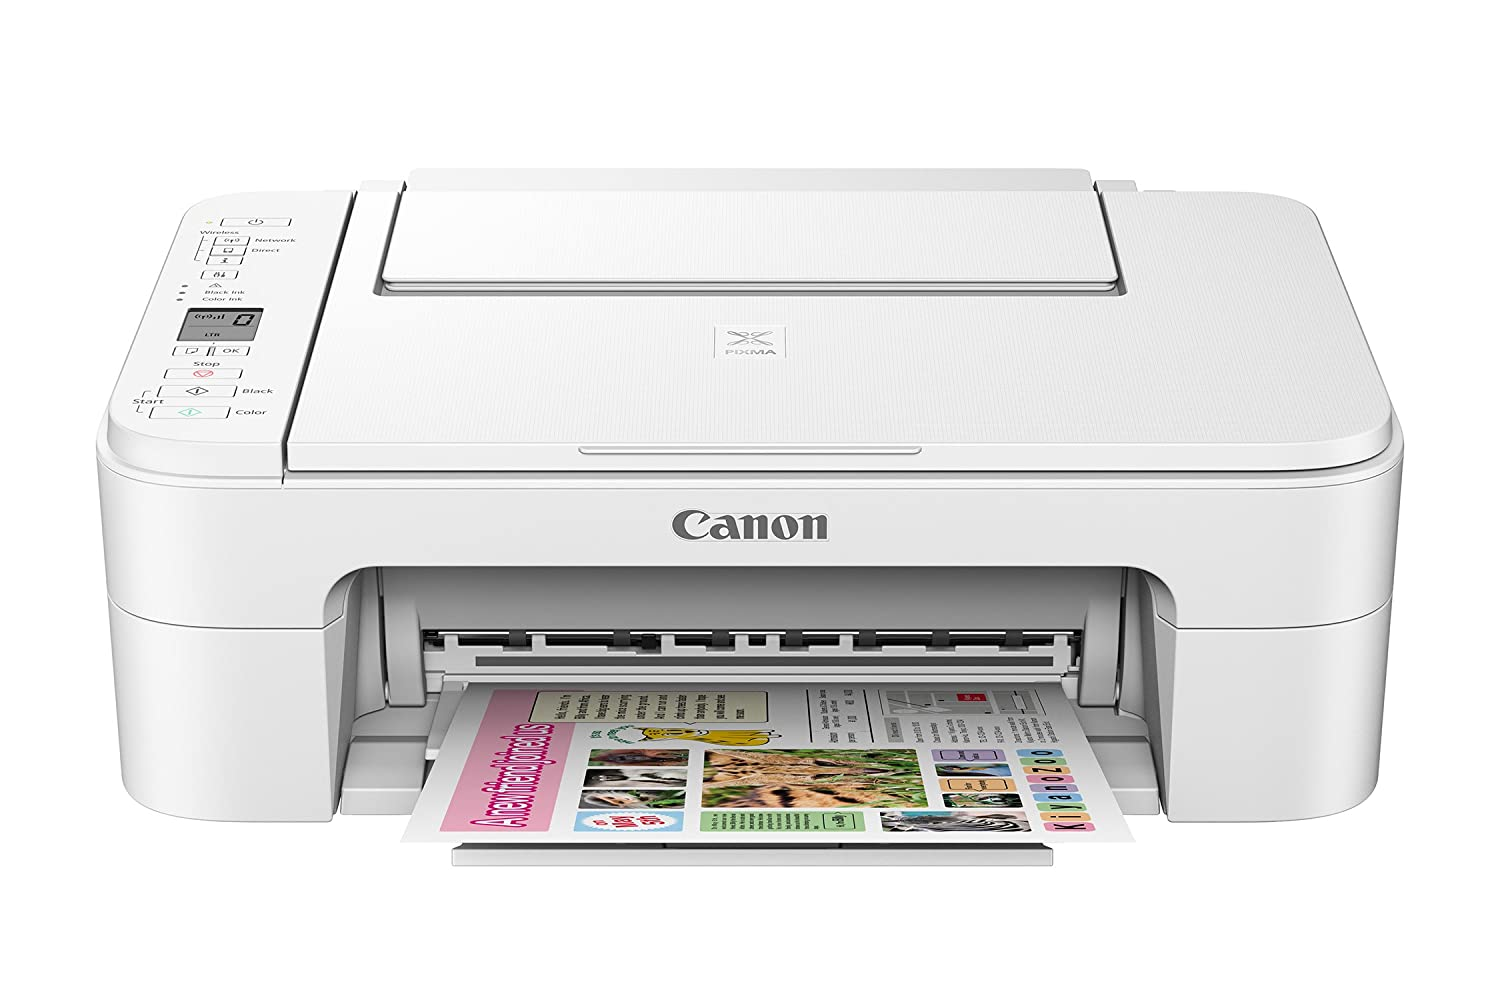 Top 11 Best Printers for College Students Reviews in 2019 7